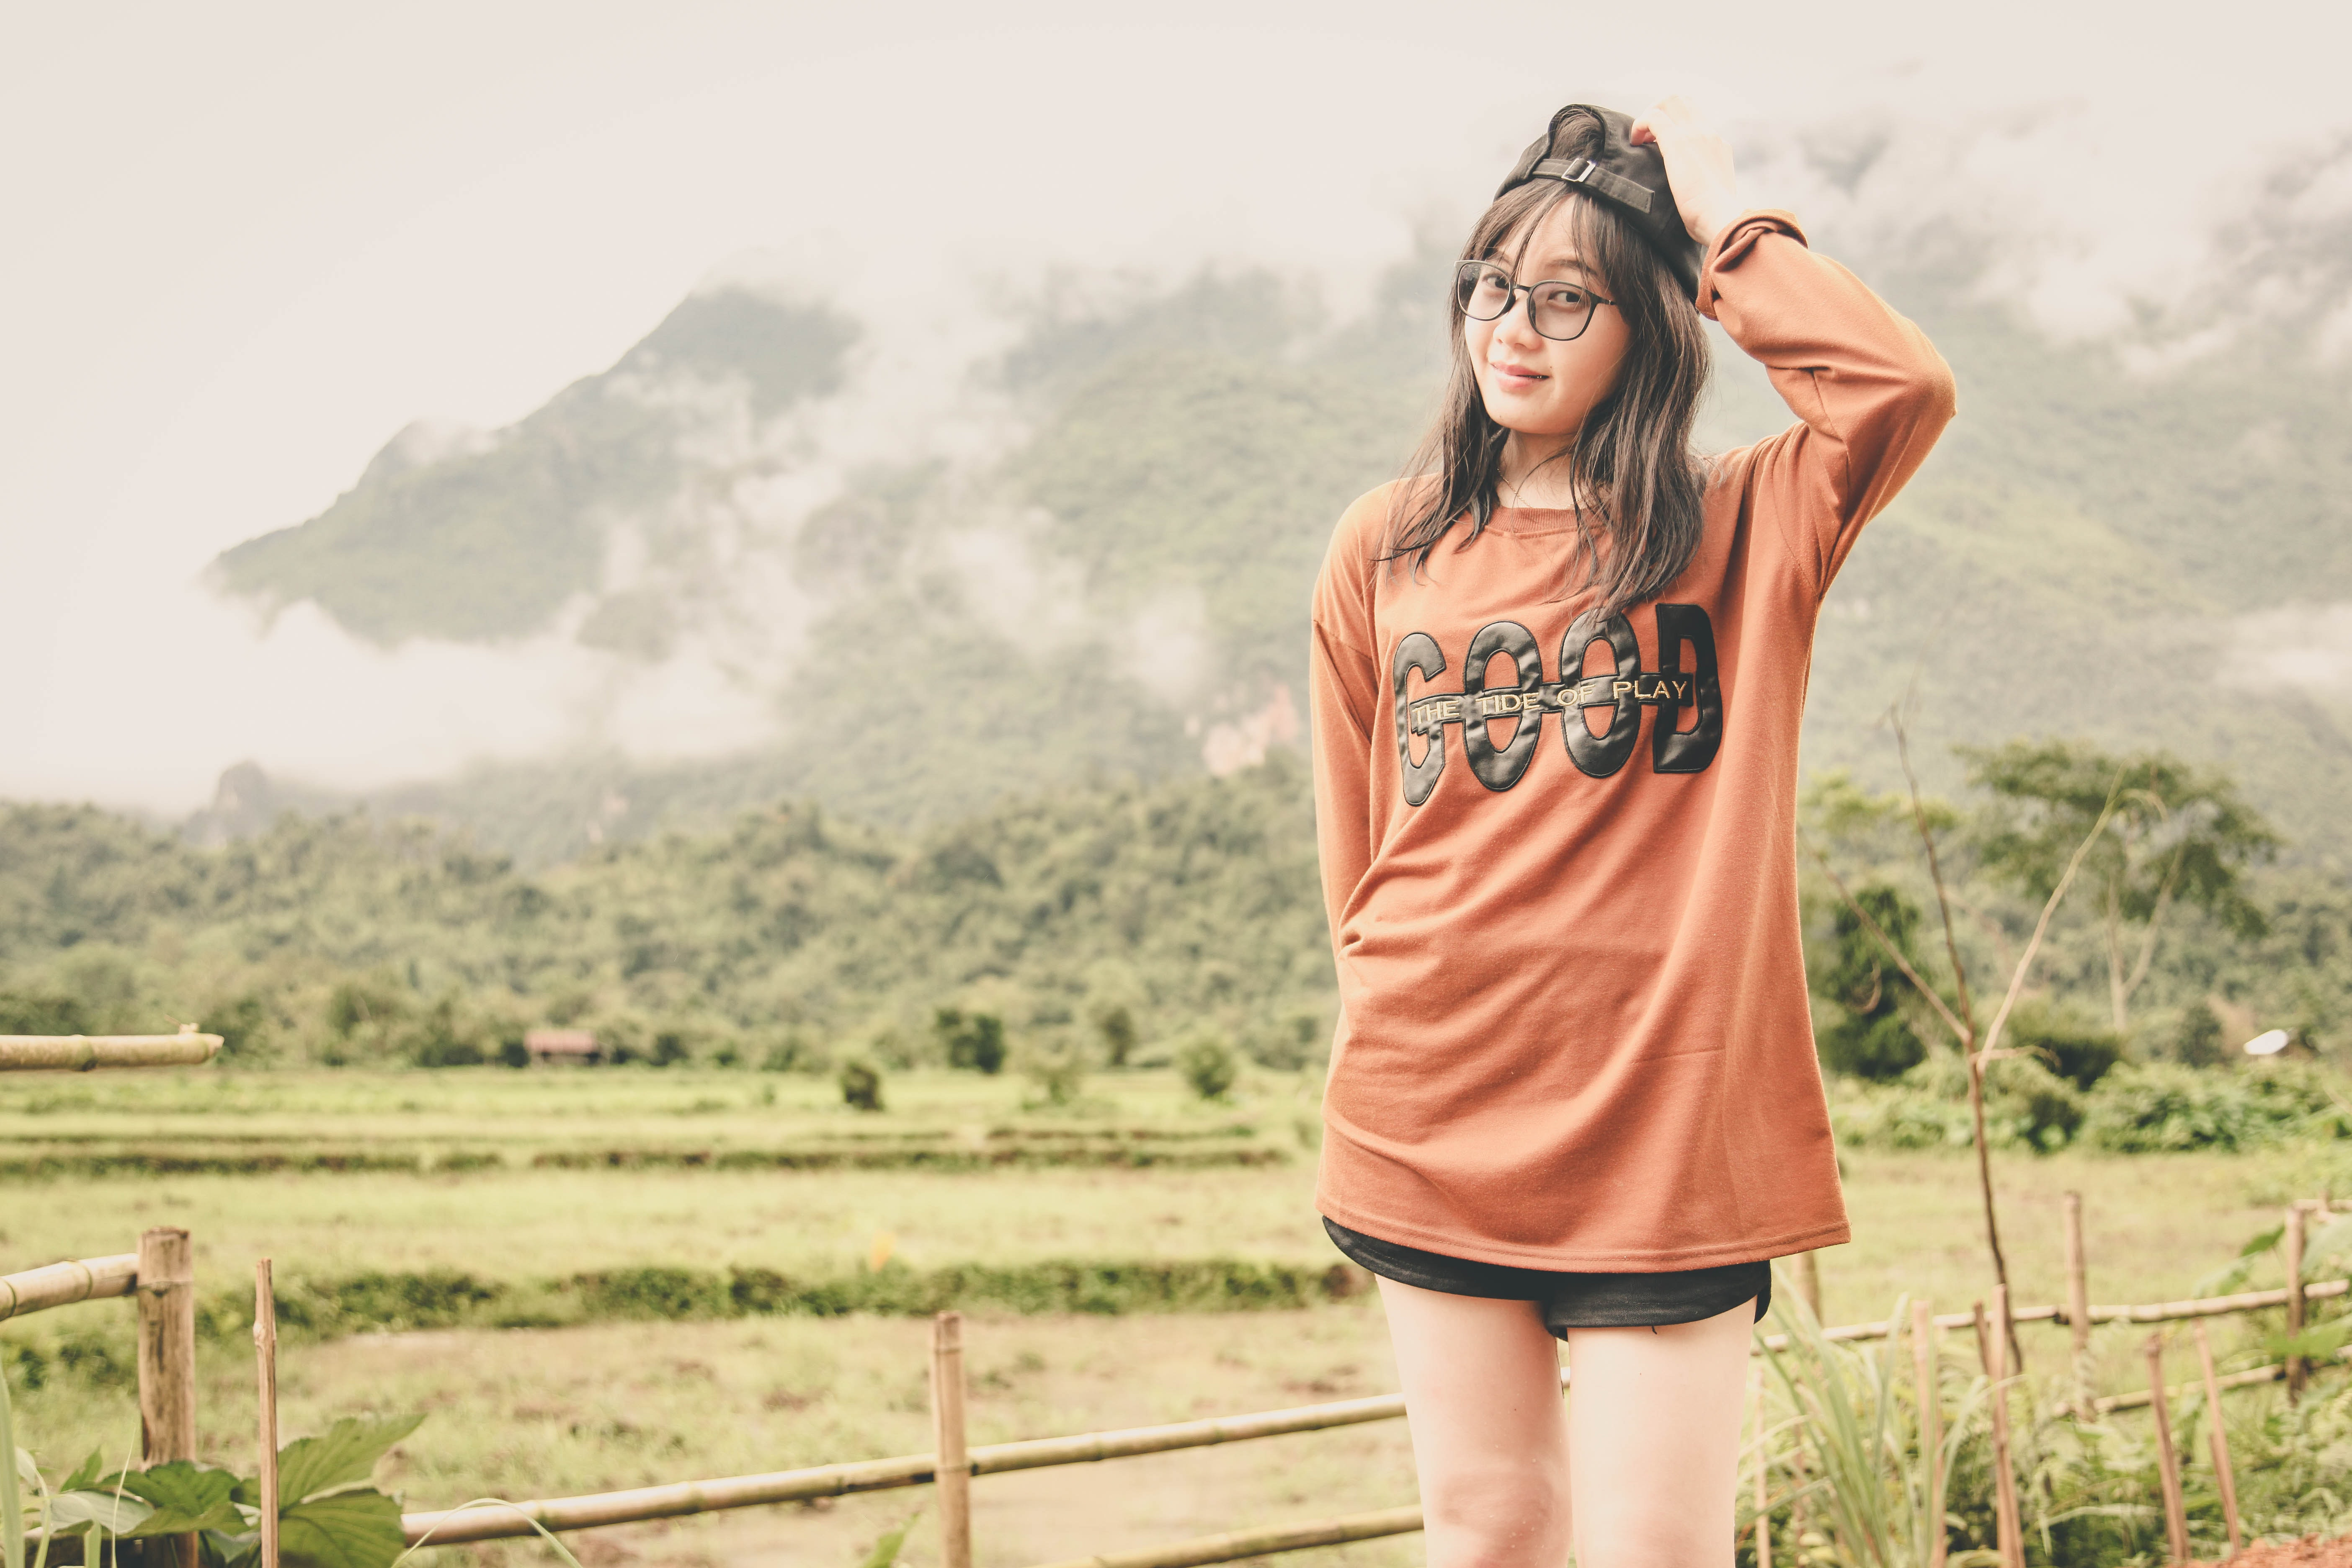 Woman Wearing Orange Long-sleeved Shirt, Agriculture, Grass, Woman, Trees, HQ Photo